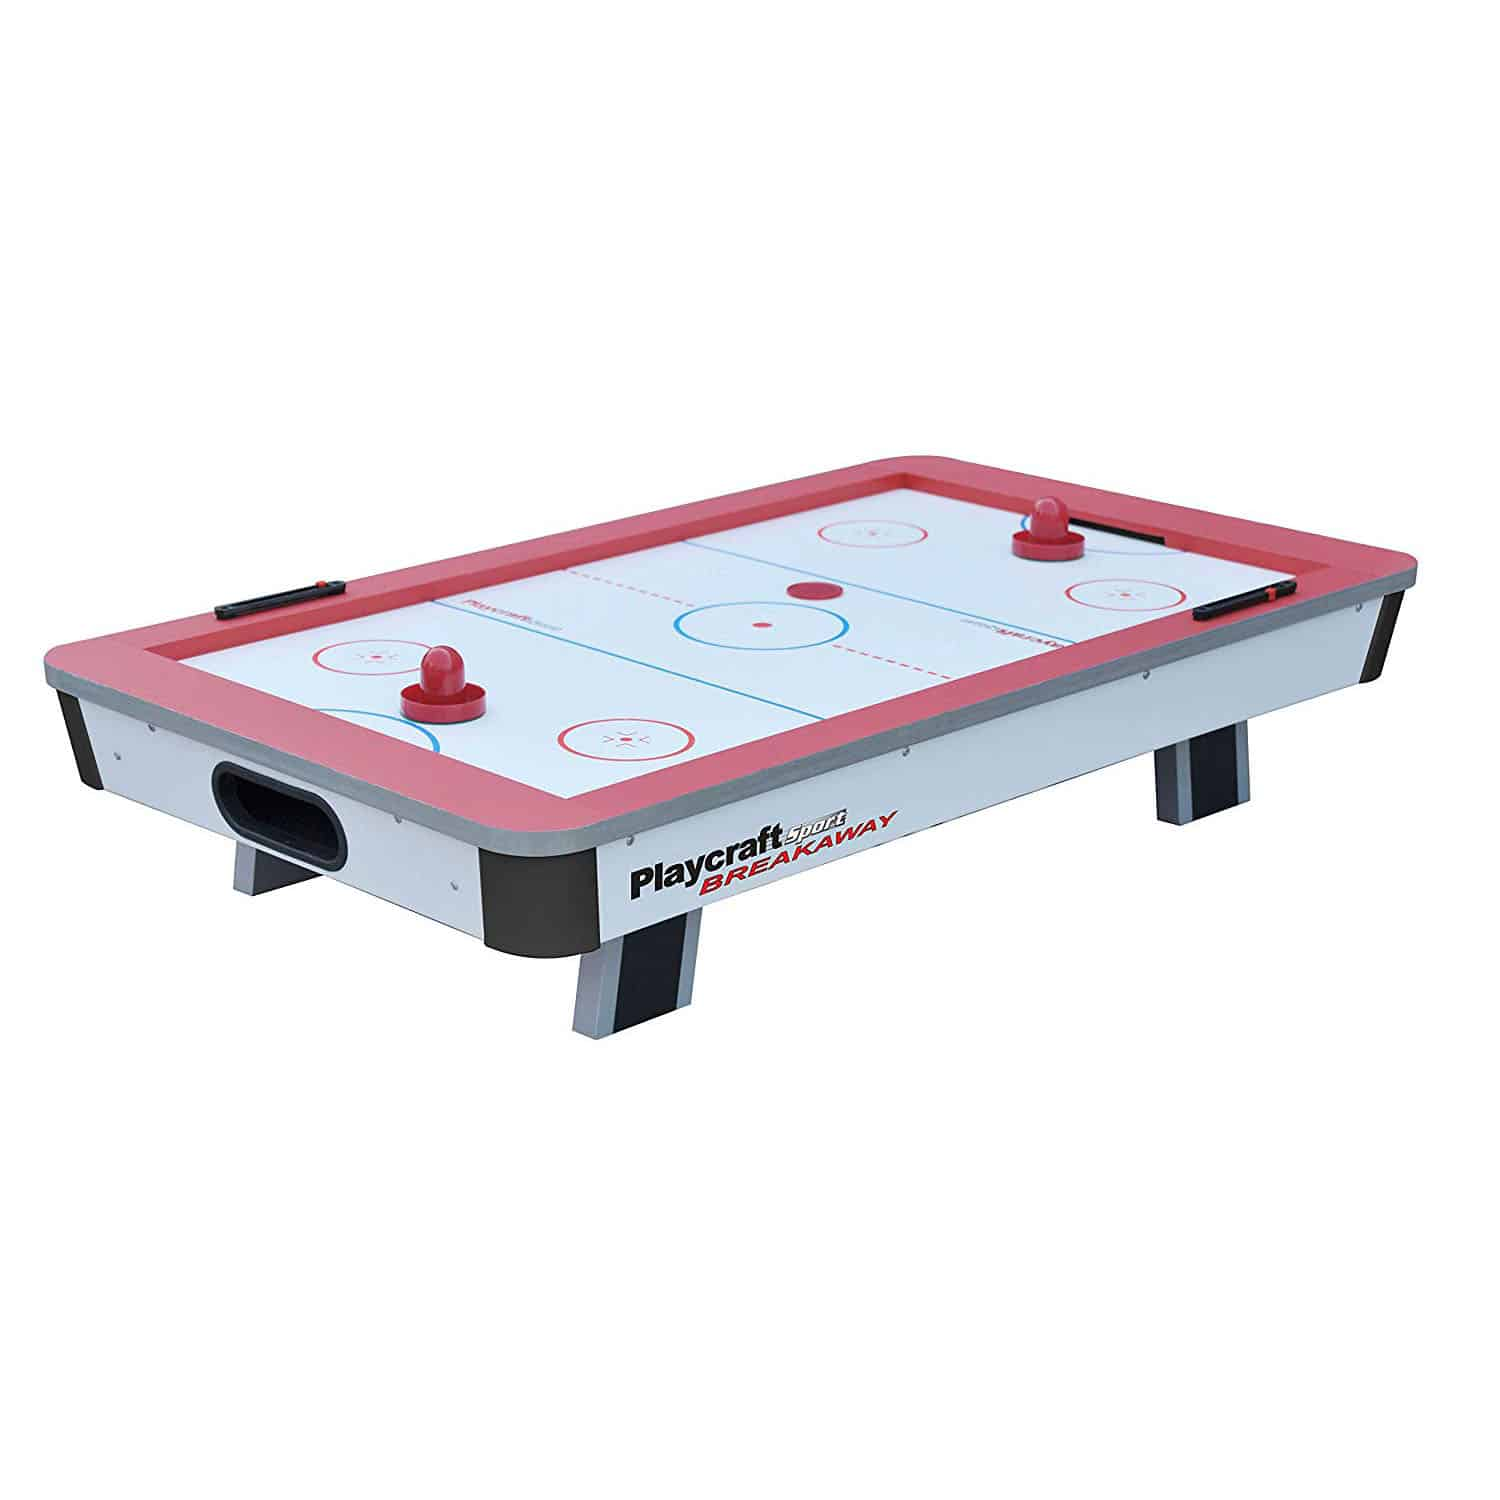 Playcraft Sport Breakaway Air Hockey Table